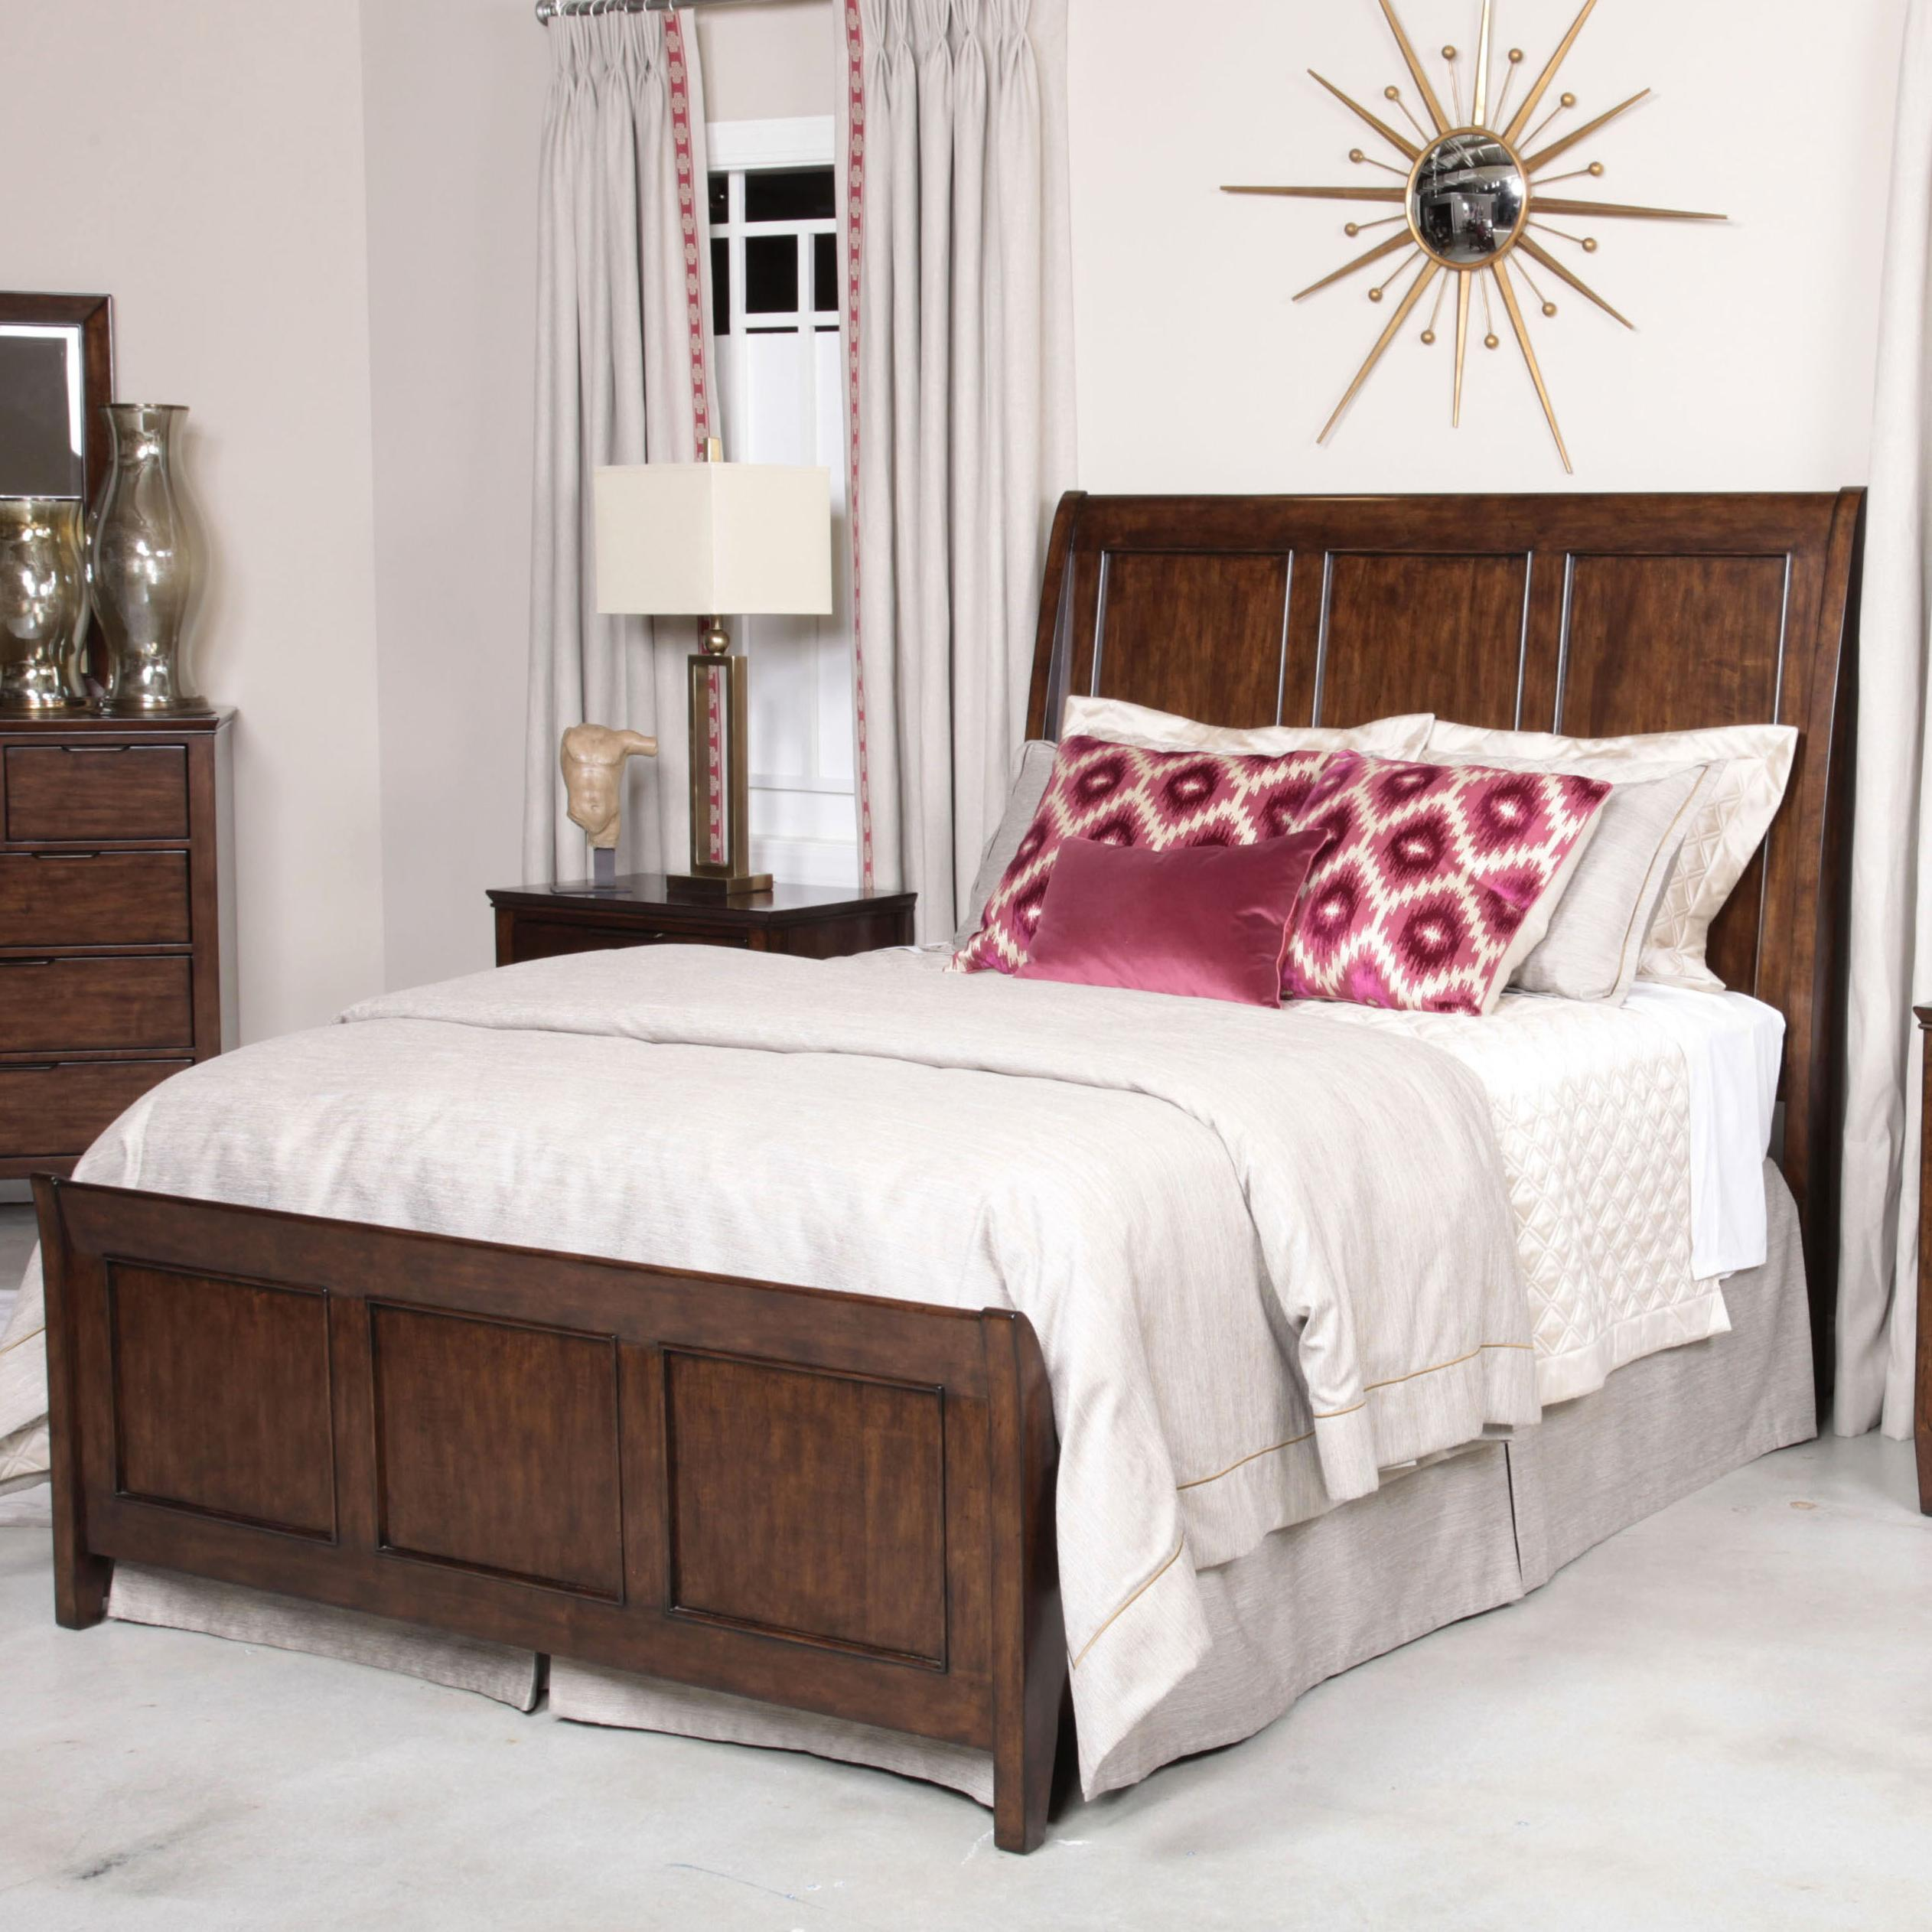 Kincaid Furniture Elise Caris Queen Sleigh Bed - Item Number: 77-135P